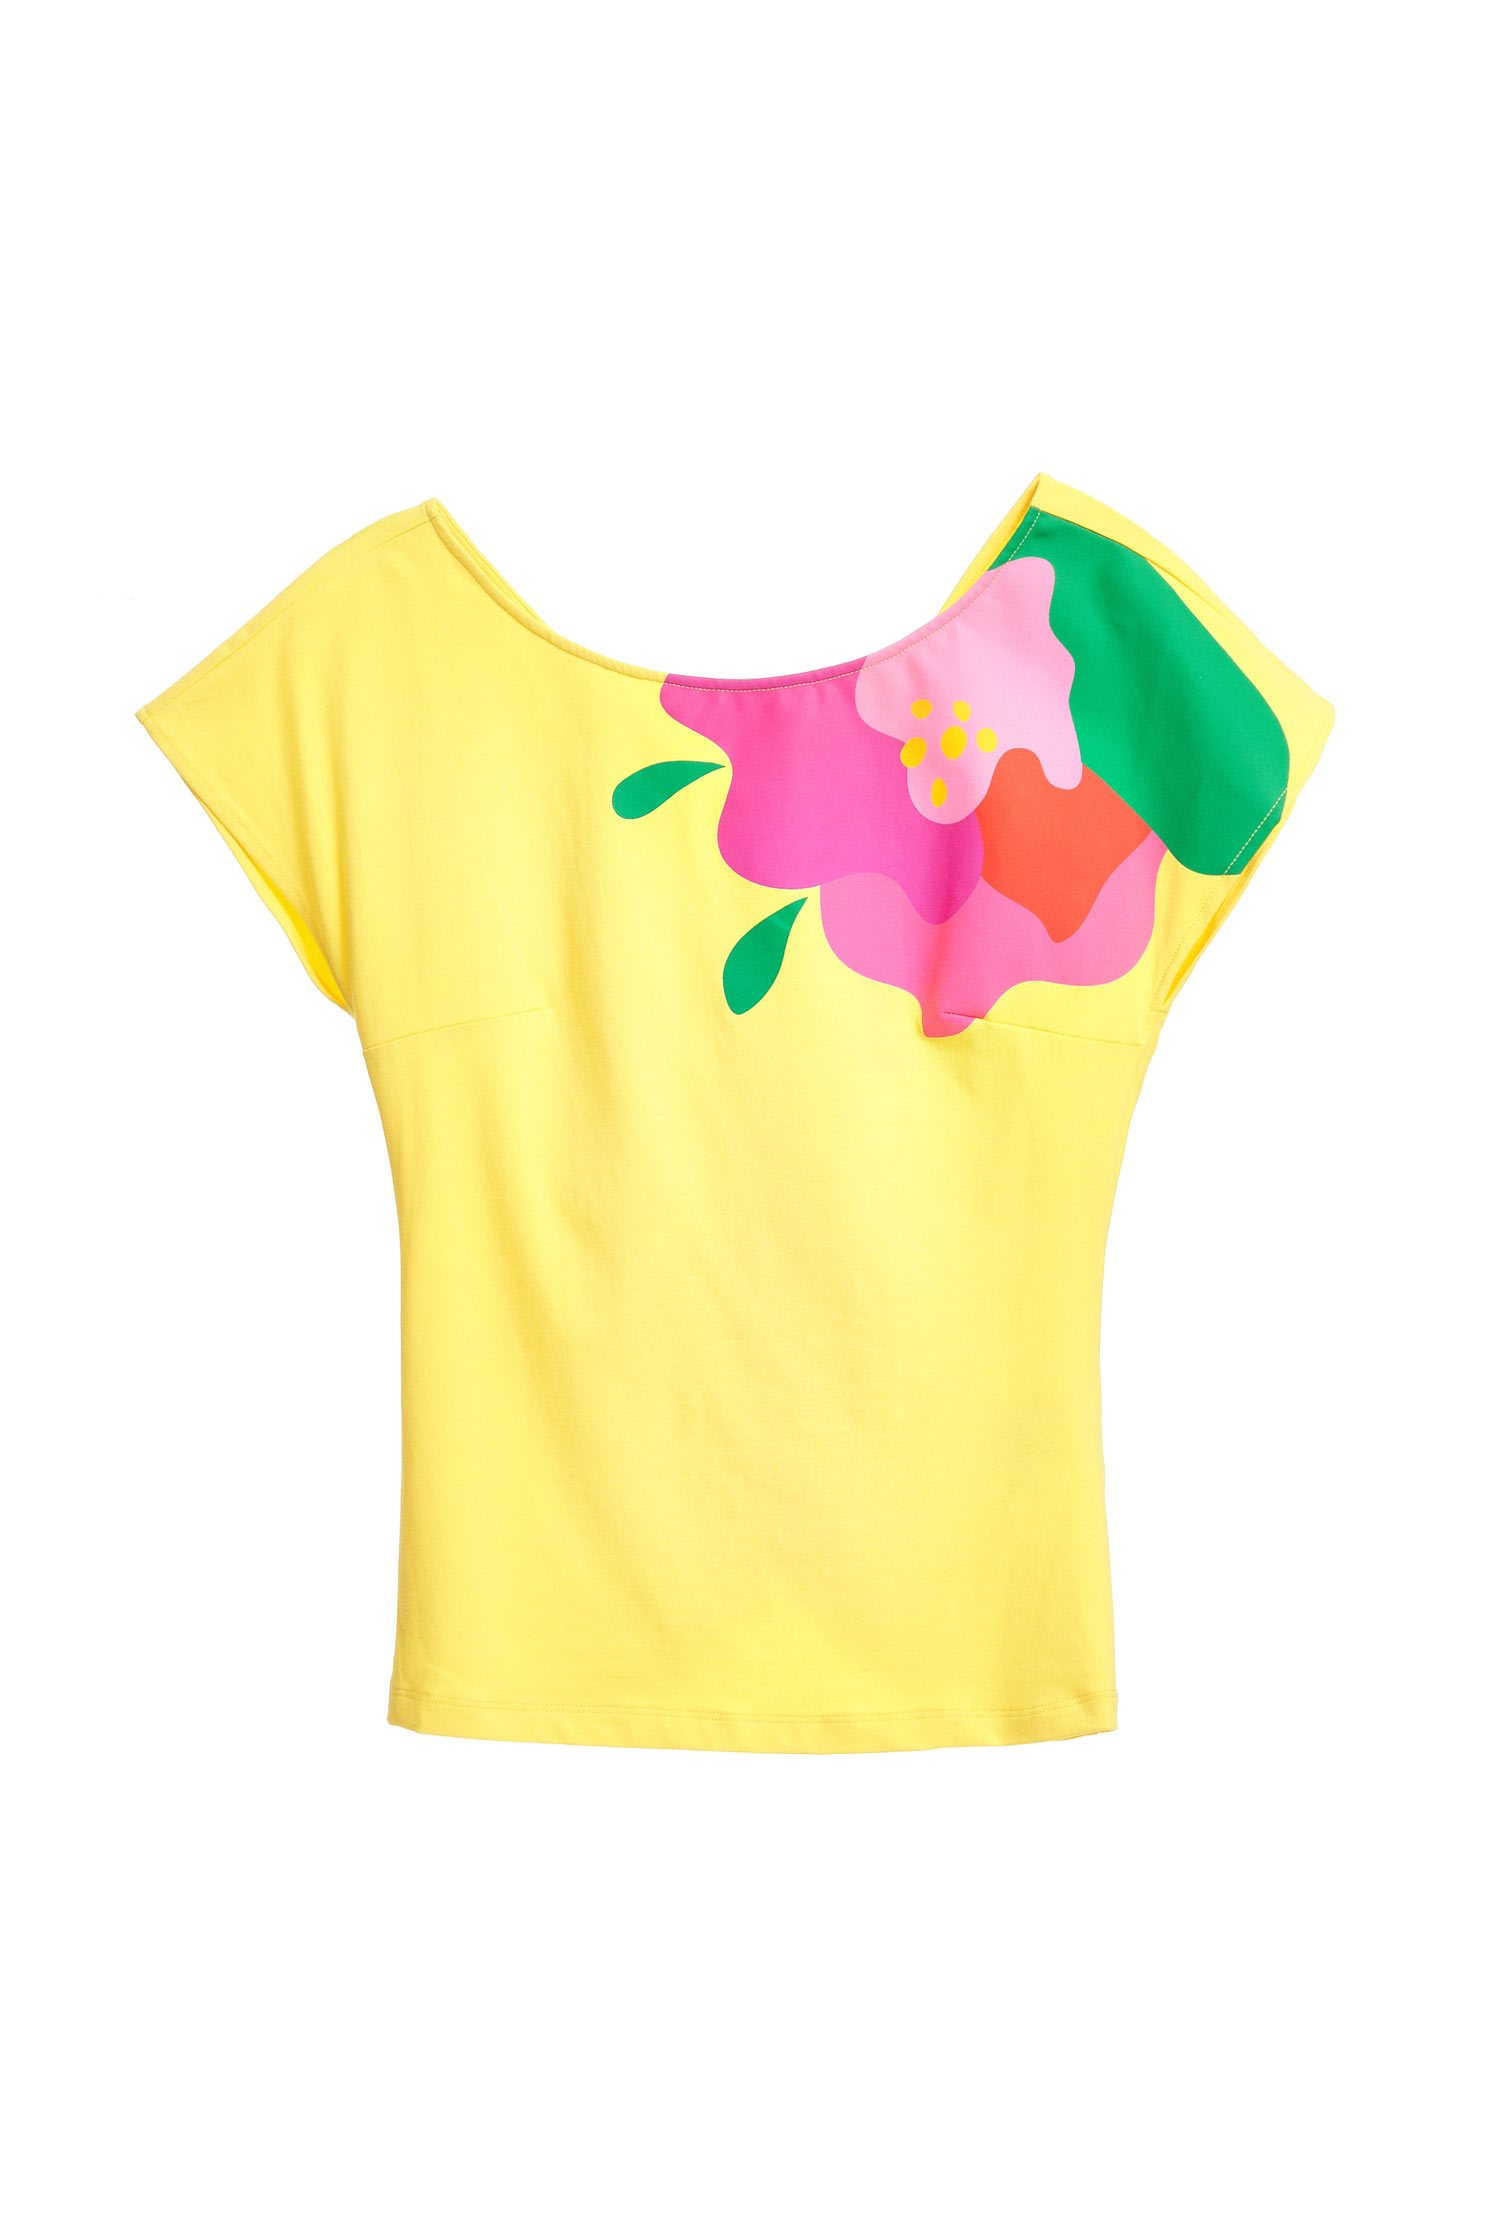 iROO x Flower in Vogue vibrant flower top